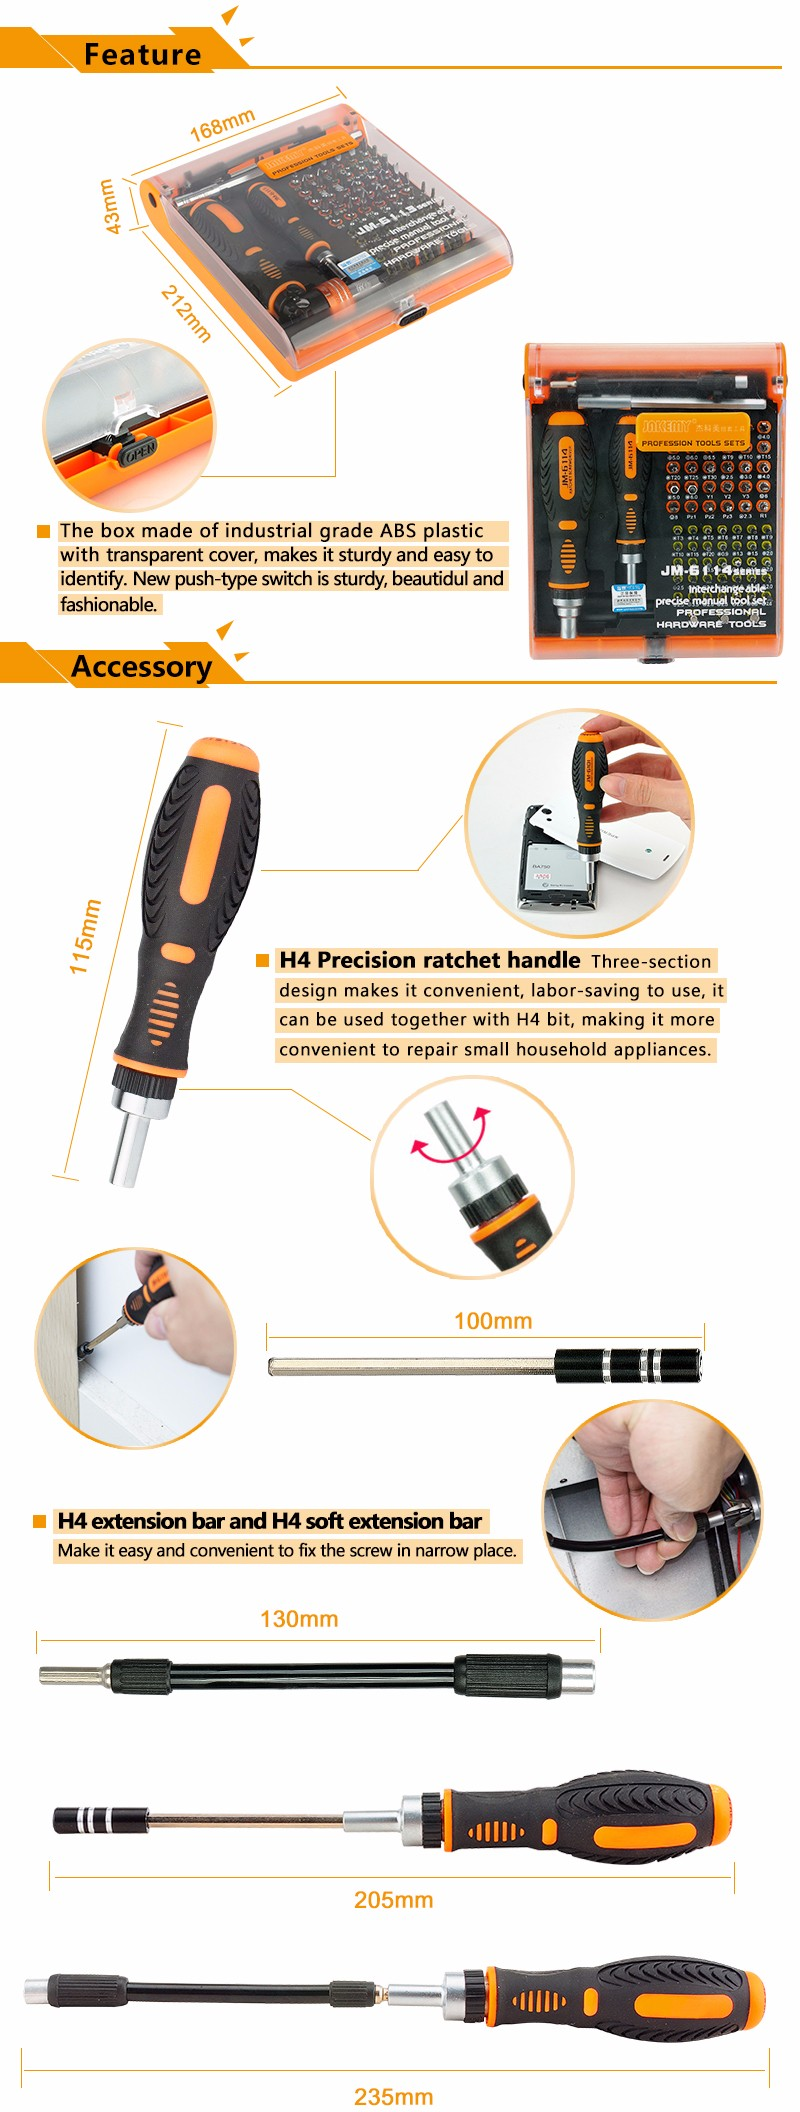 Repair tool mini crv screwdriver bits with pentagon screwdriver